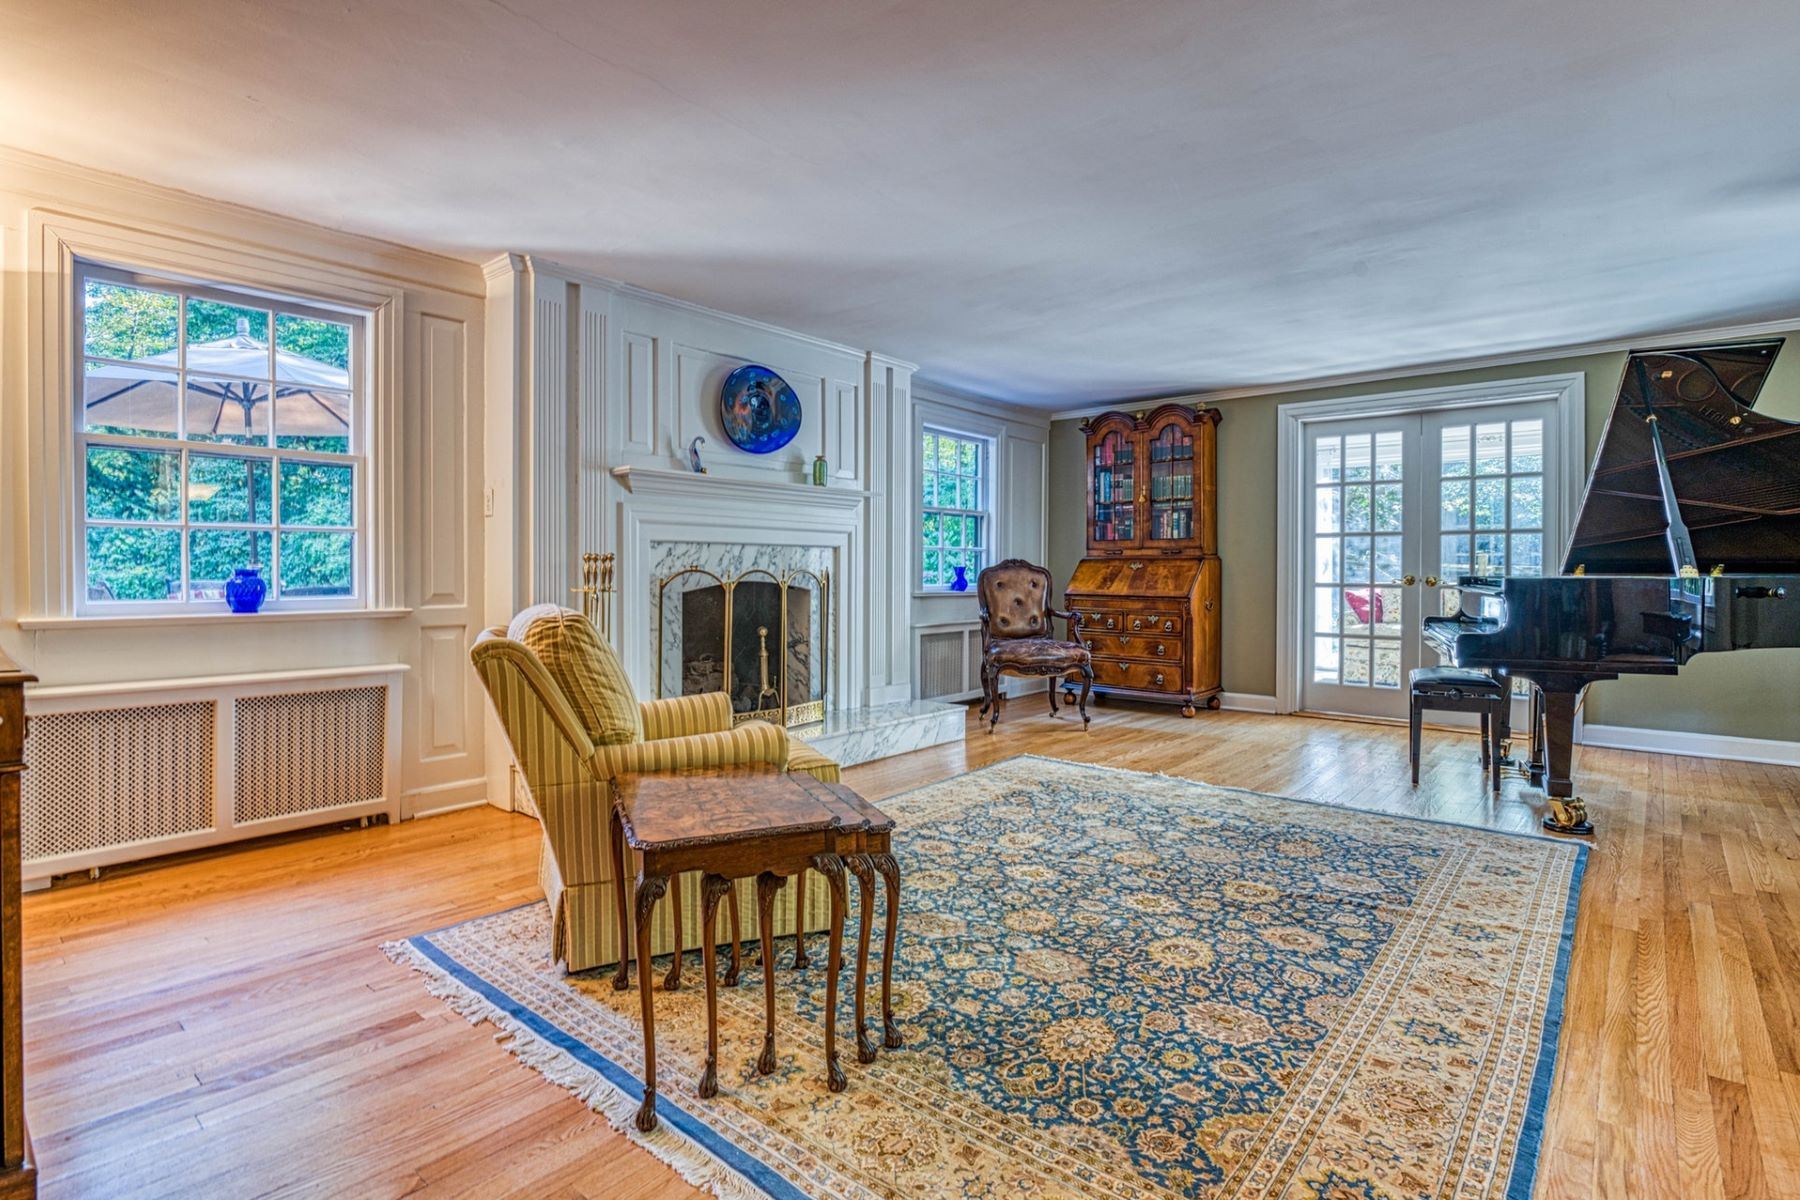 Single Family Homes for Sale at Elegant Colonial 160 Wearimus Rd Ho Ho Kus, New Jersey 07423 United States